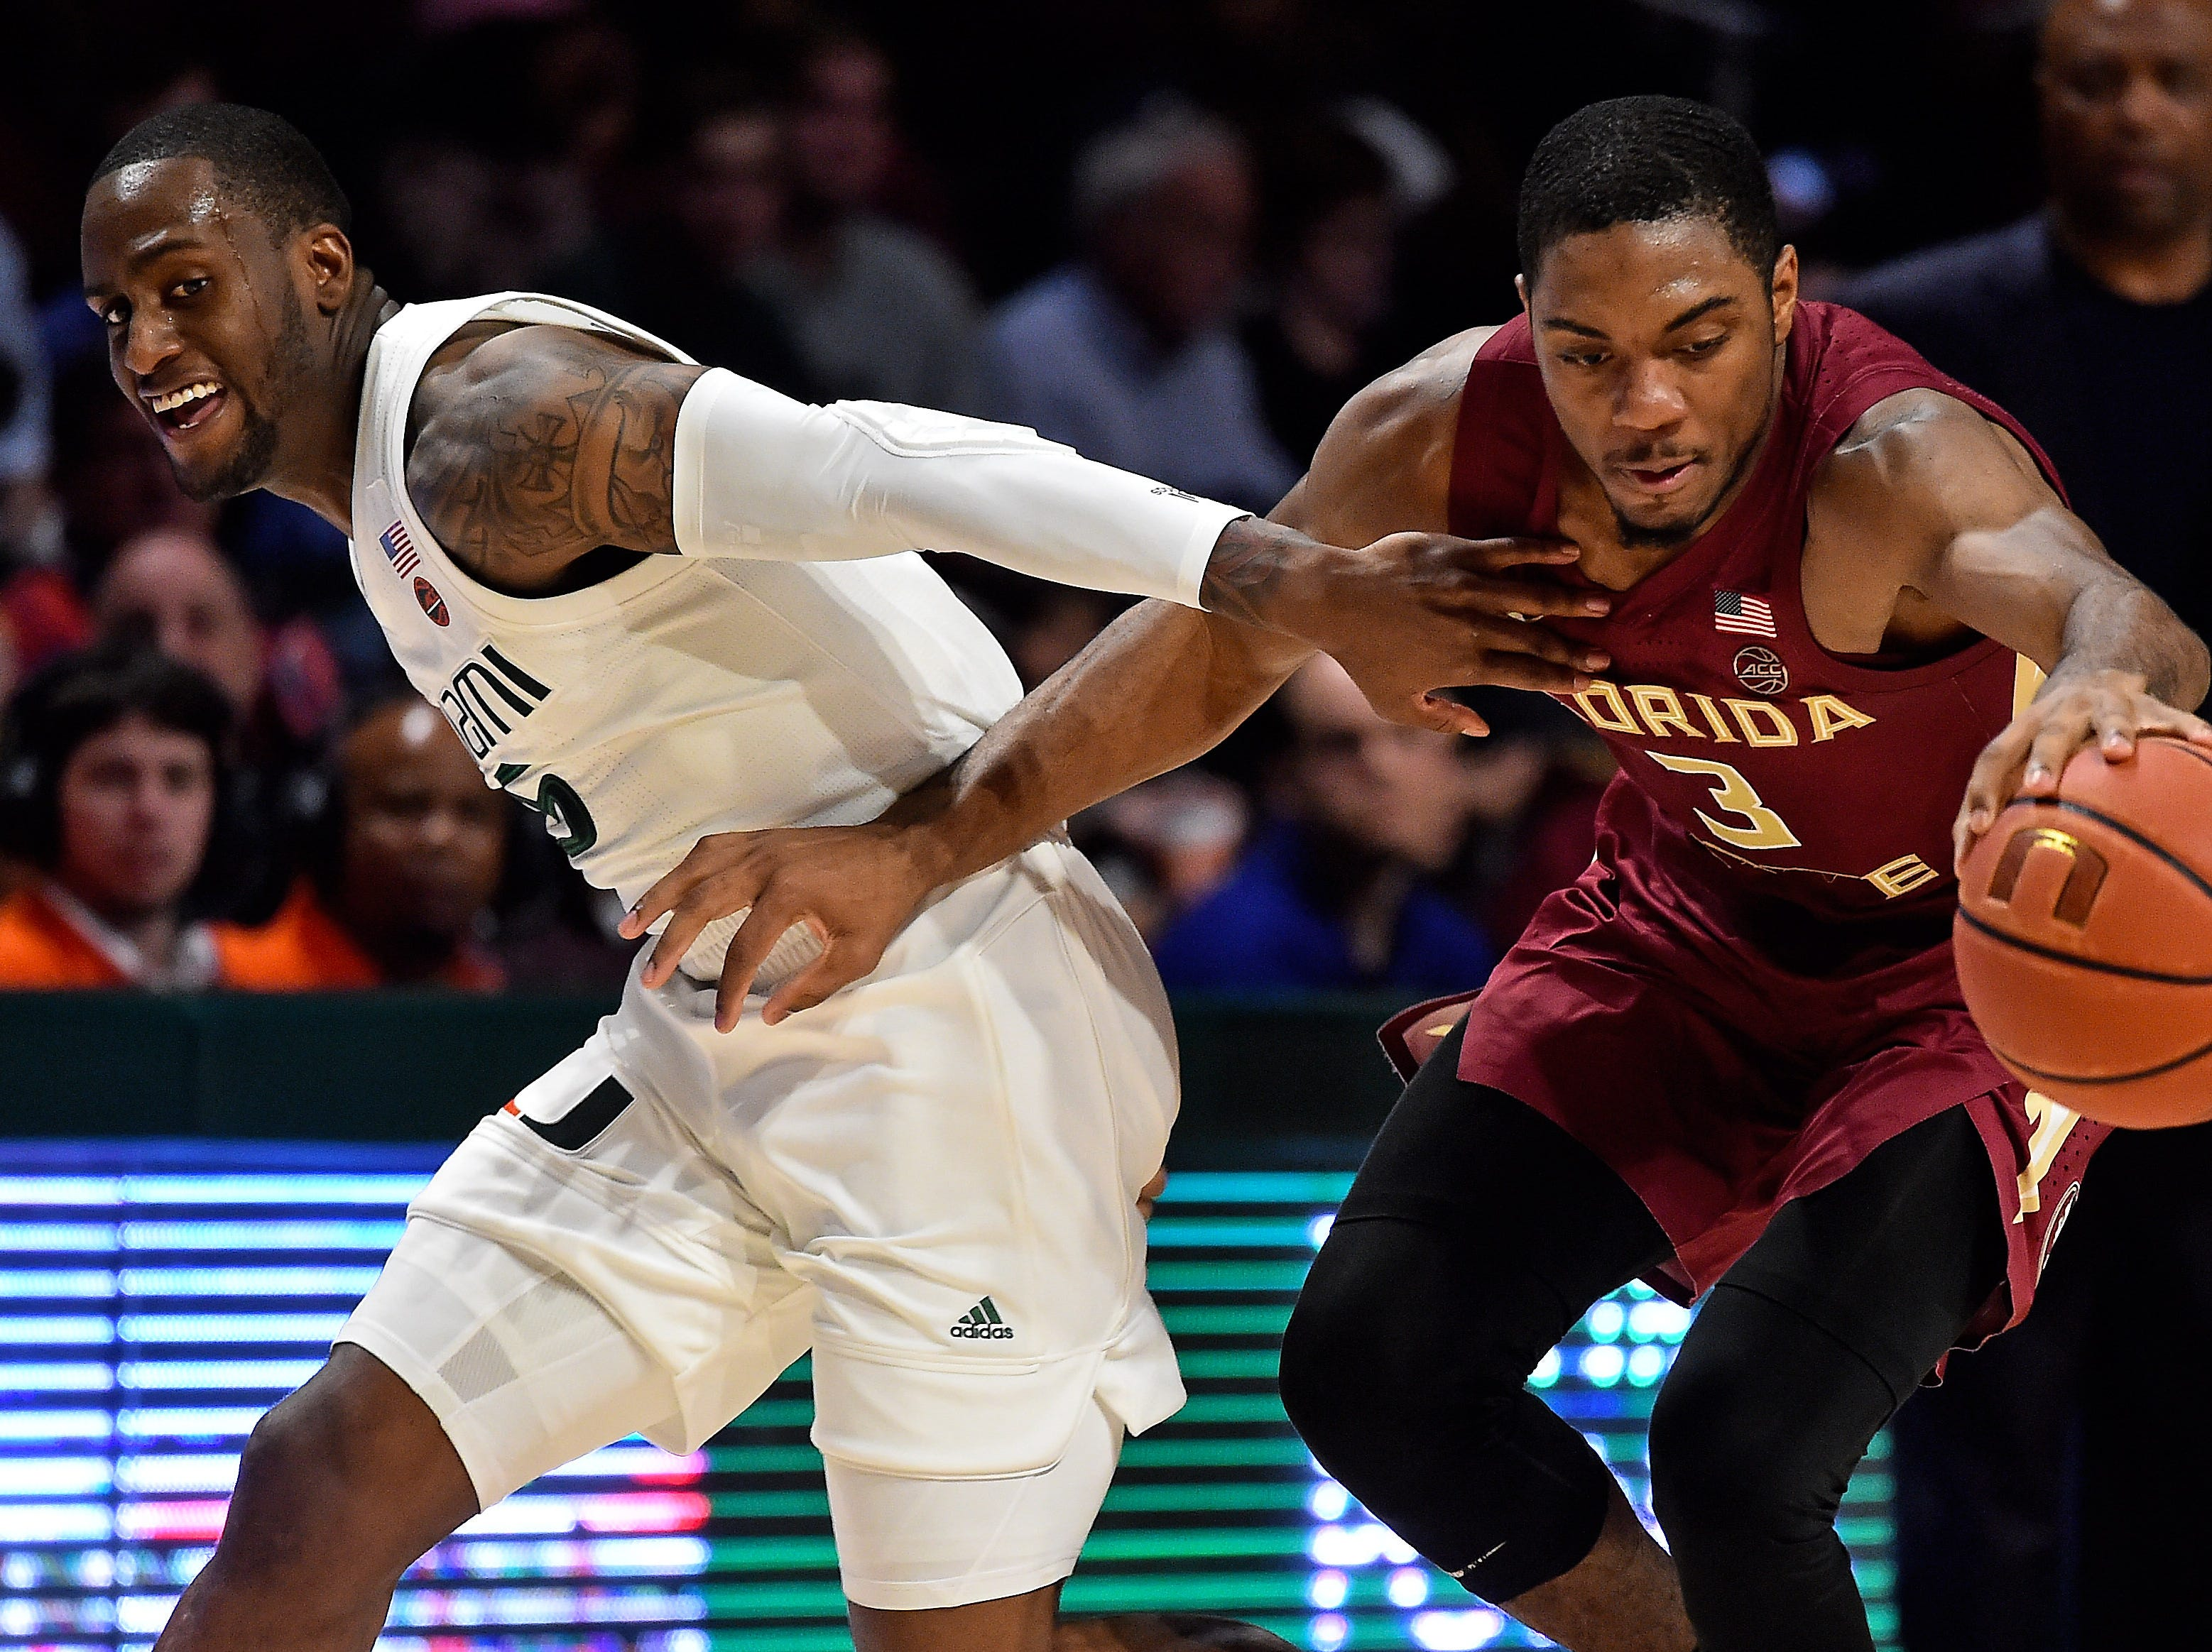 Jan 27, 2019; Coral Gables, FL, USA; Miami Hurricanes guard Zach Johnson (5) and Florida State Seminoles guard Trent Forrest (3) chase a loose ball during the second half at Watsco Center. Mandatory Credit: Jasen Vinlove-USA TODAY Sports